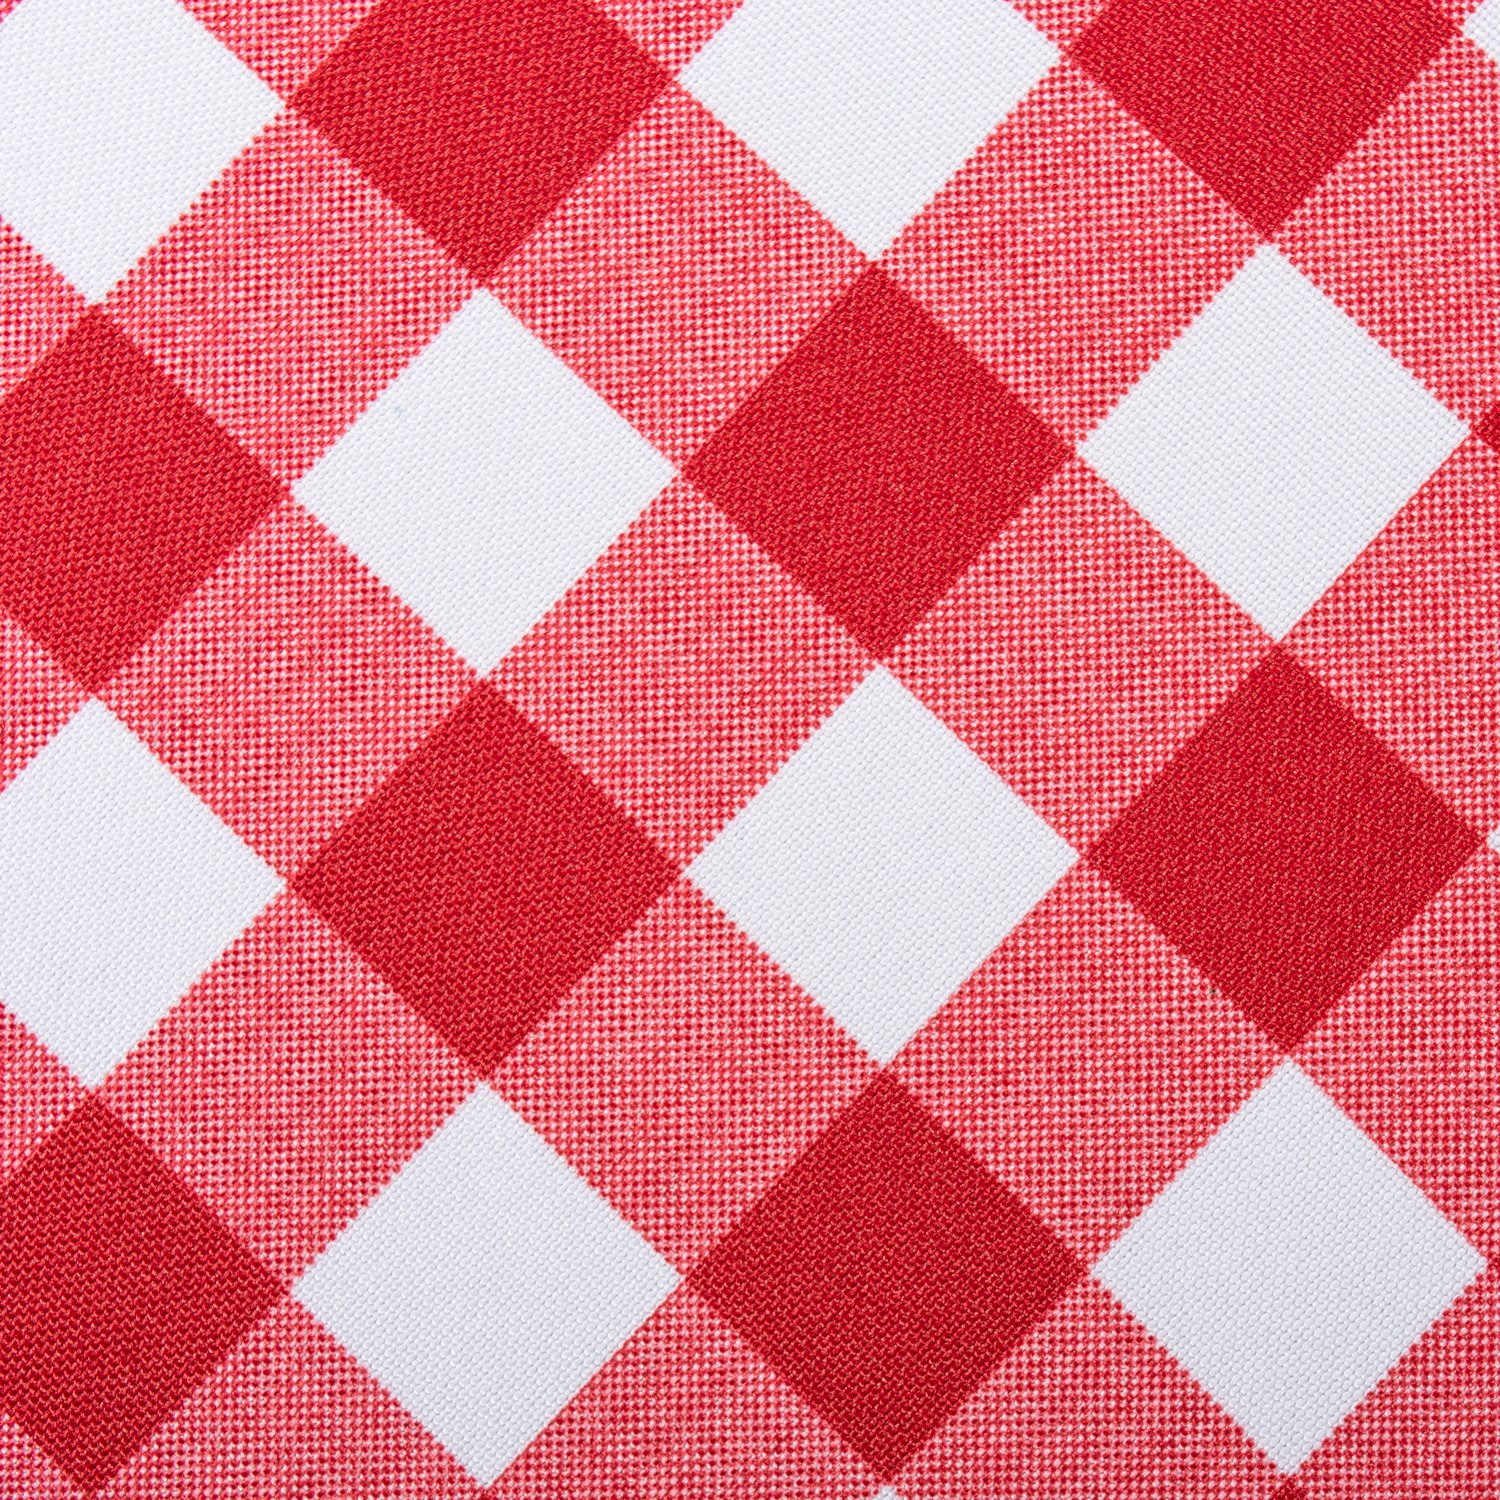 DII Spring & Summer Outdoor Tablecloth, Spill Proof and Waterproof with Zipper and Umbrella Hole, Host Backyard Parties, BBQs, & Family Gatherings - (60x120'' - Seats 10 to 12) Red Check by DII (Image #2)